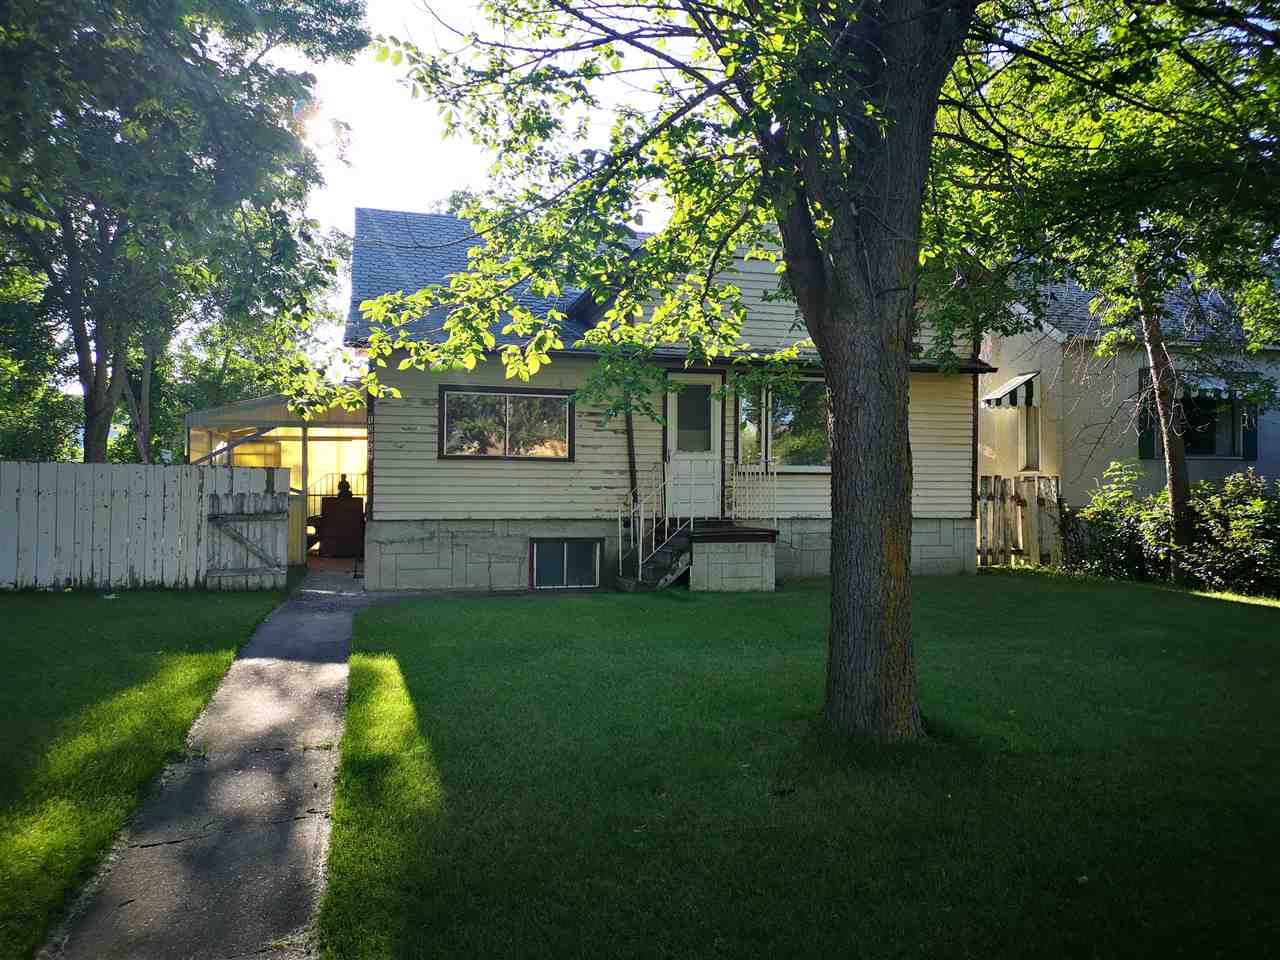 Main Photo: 10952 108 Street in Edmonton: Zone 08 House for sale : MLS®# E4210100